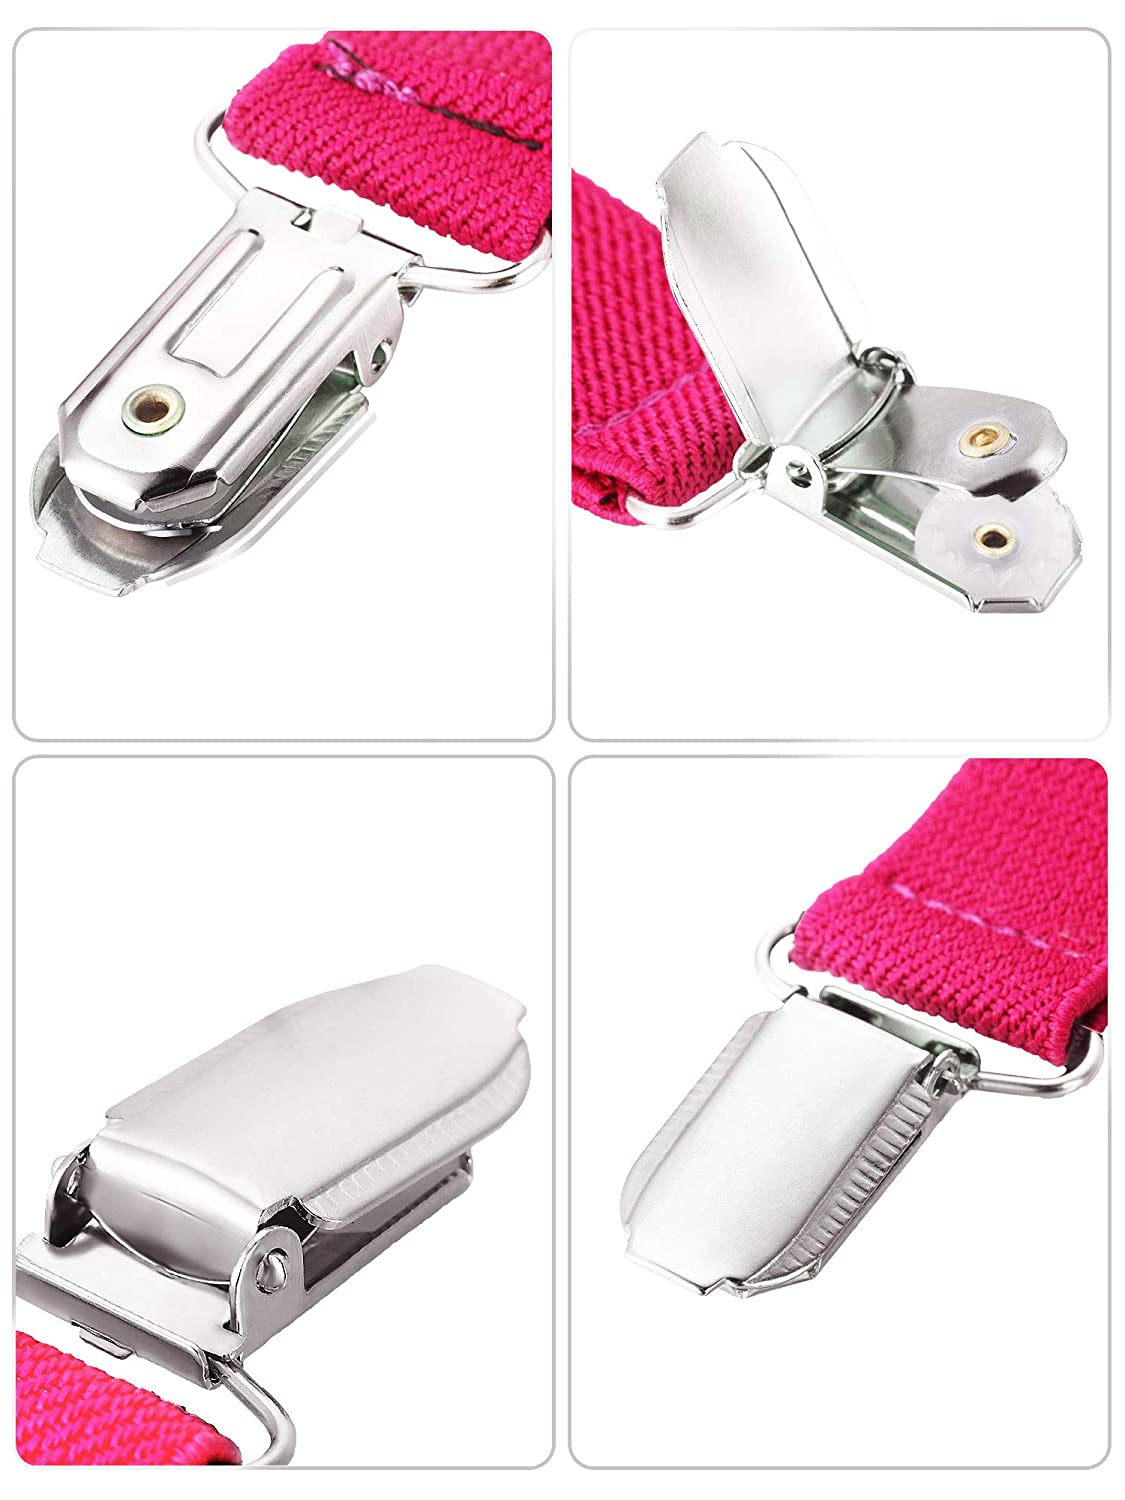 Blulu 4 Pieces 5 inch Mitten Clips Stainless Steel Gloves Cap Clips Short Elastic Clips for Fixing Gloves Coat Mattress